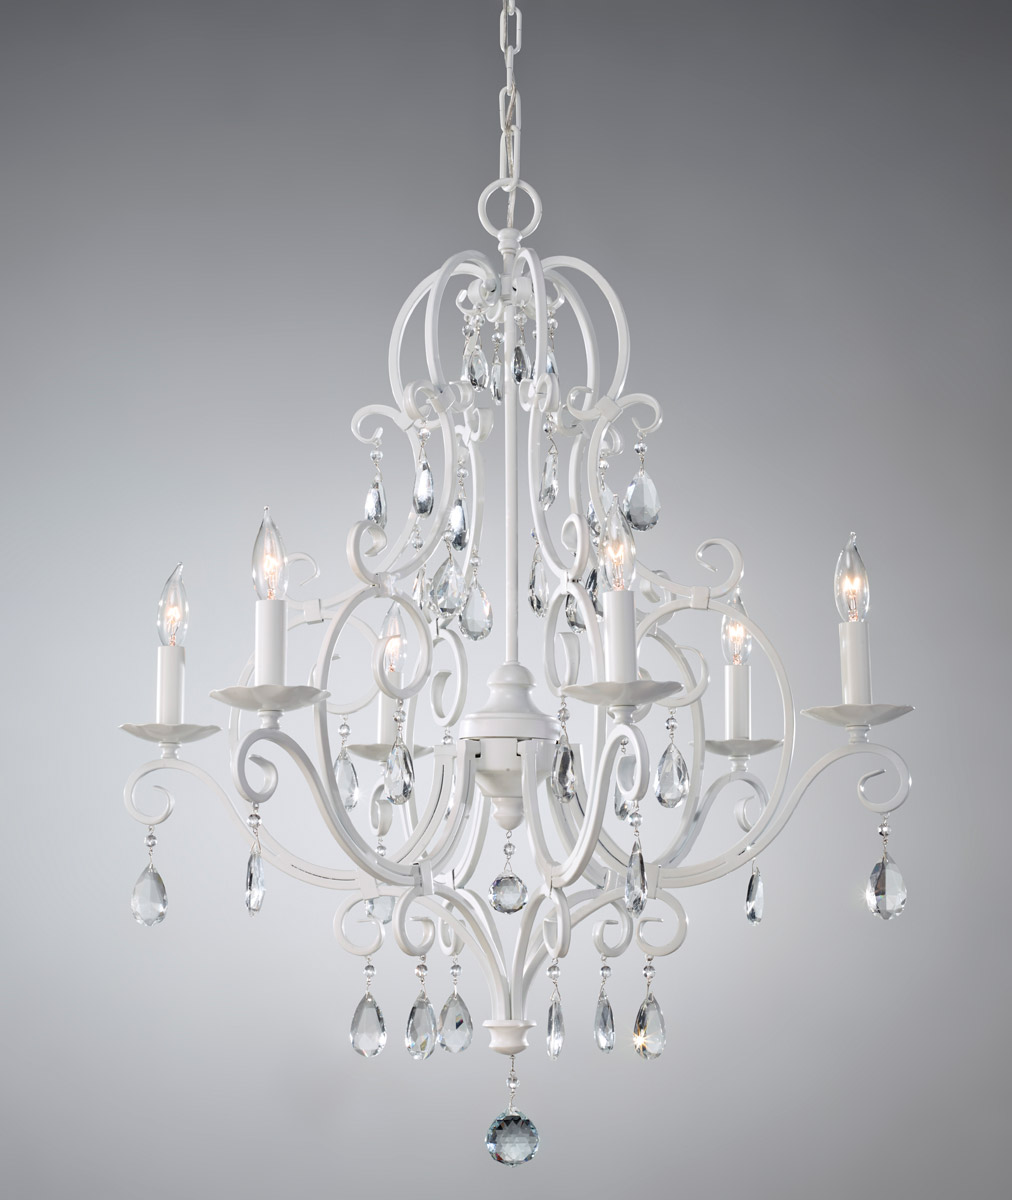 Feiss Chateau Blanc 6 Light Chandelier In Semi Gloss White